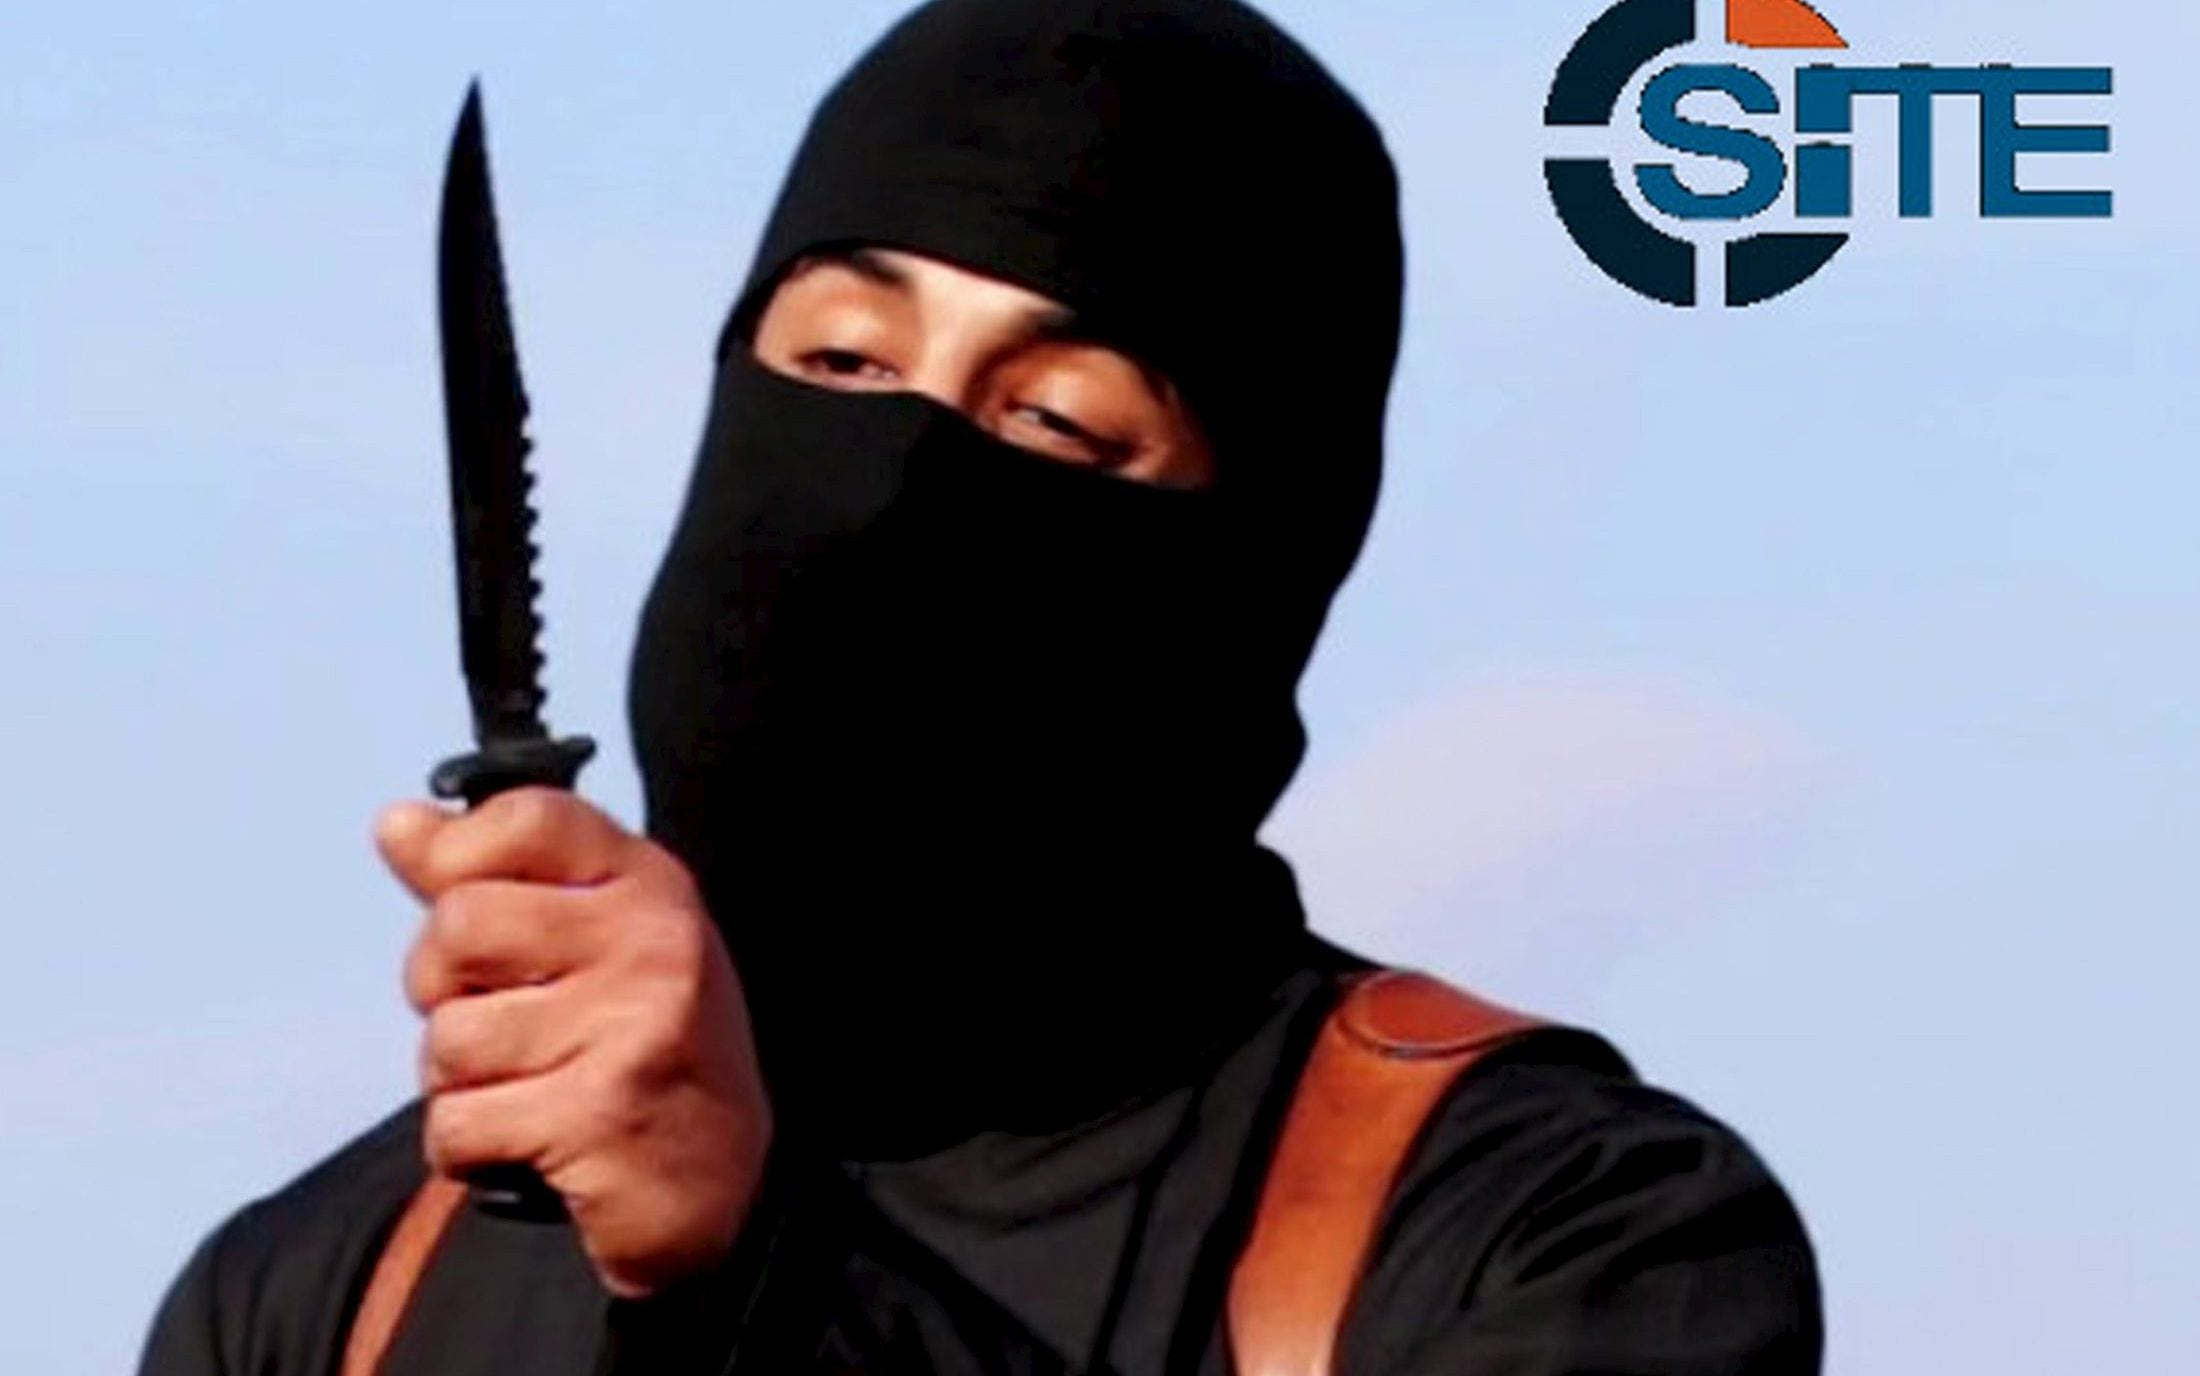 A masked, black-clad militant, who has been identified by the Washington Post newspaper as a Briton named Mohammed Emwazi, brandishes a knife in this still file image from a 2014 video obtained from SITE Intel Group February 26, 2015